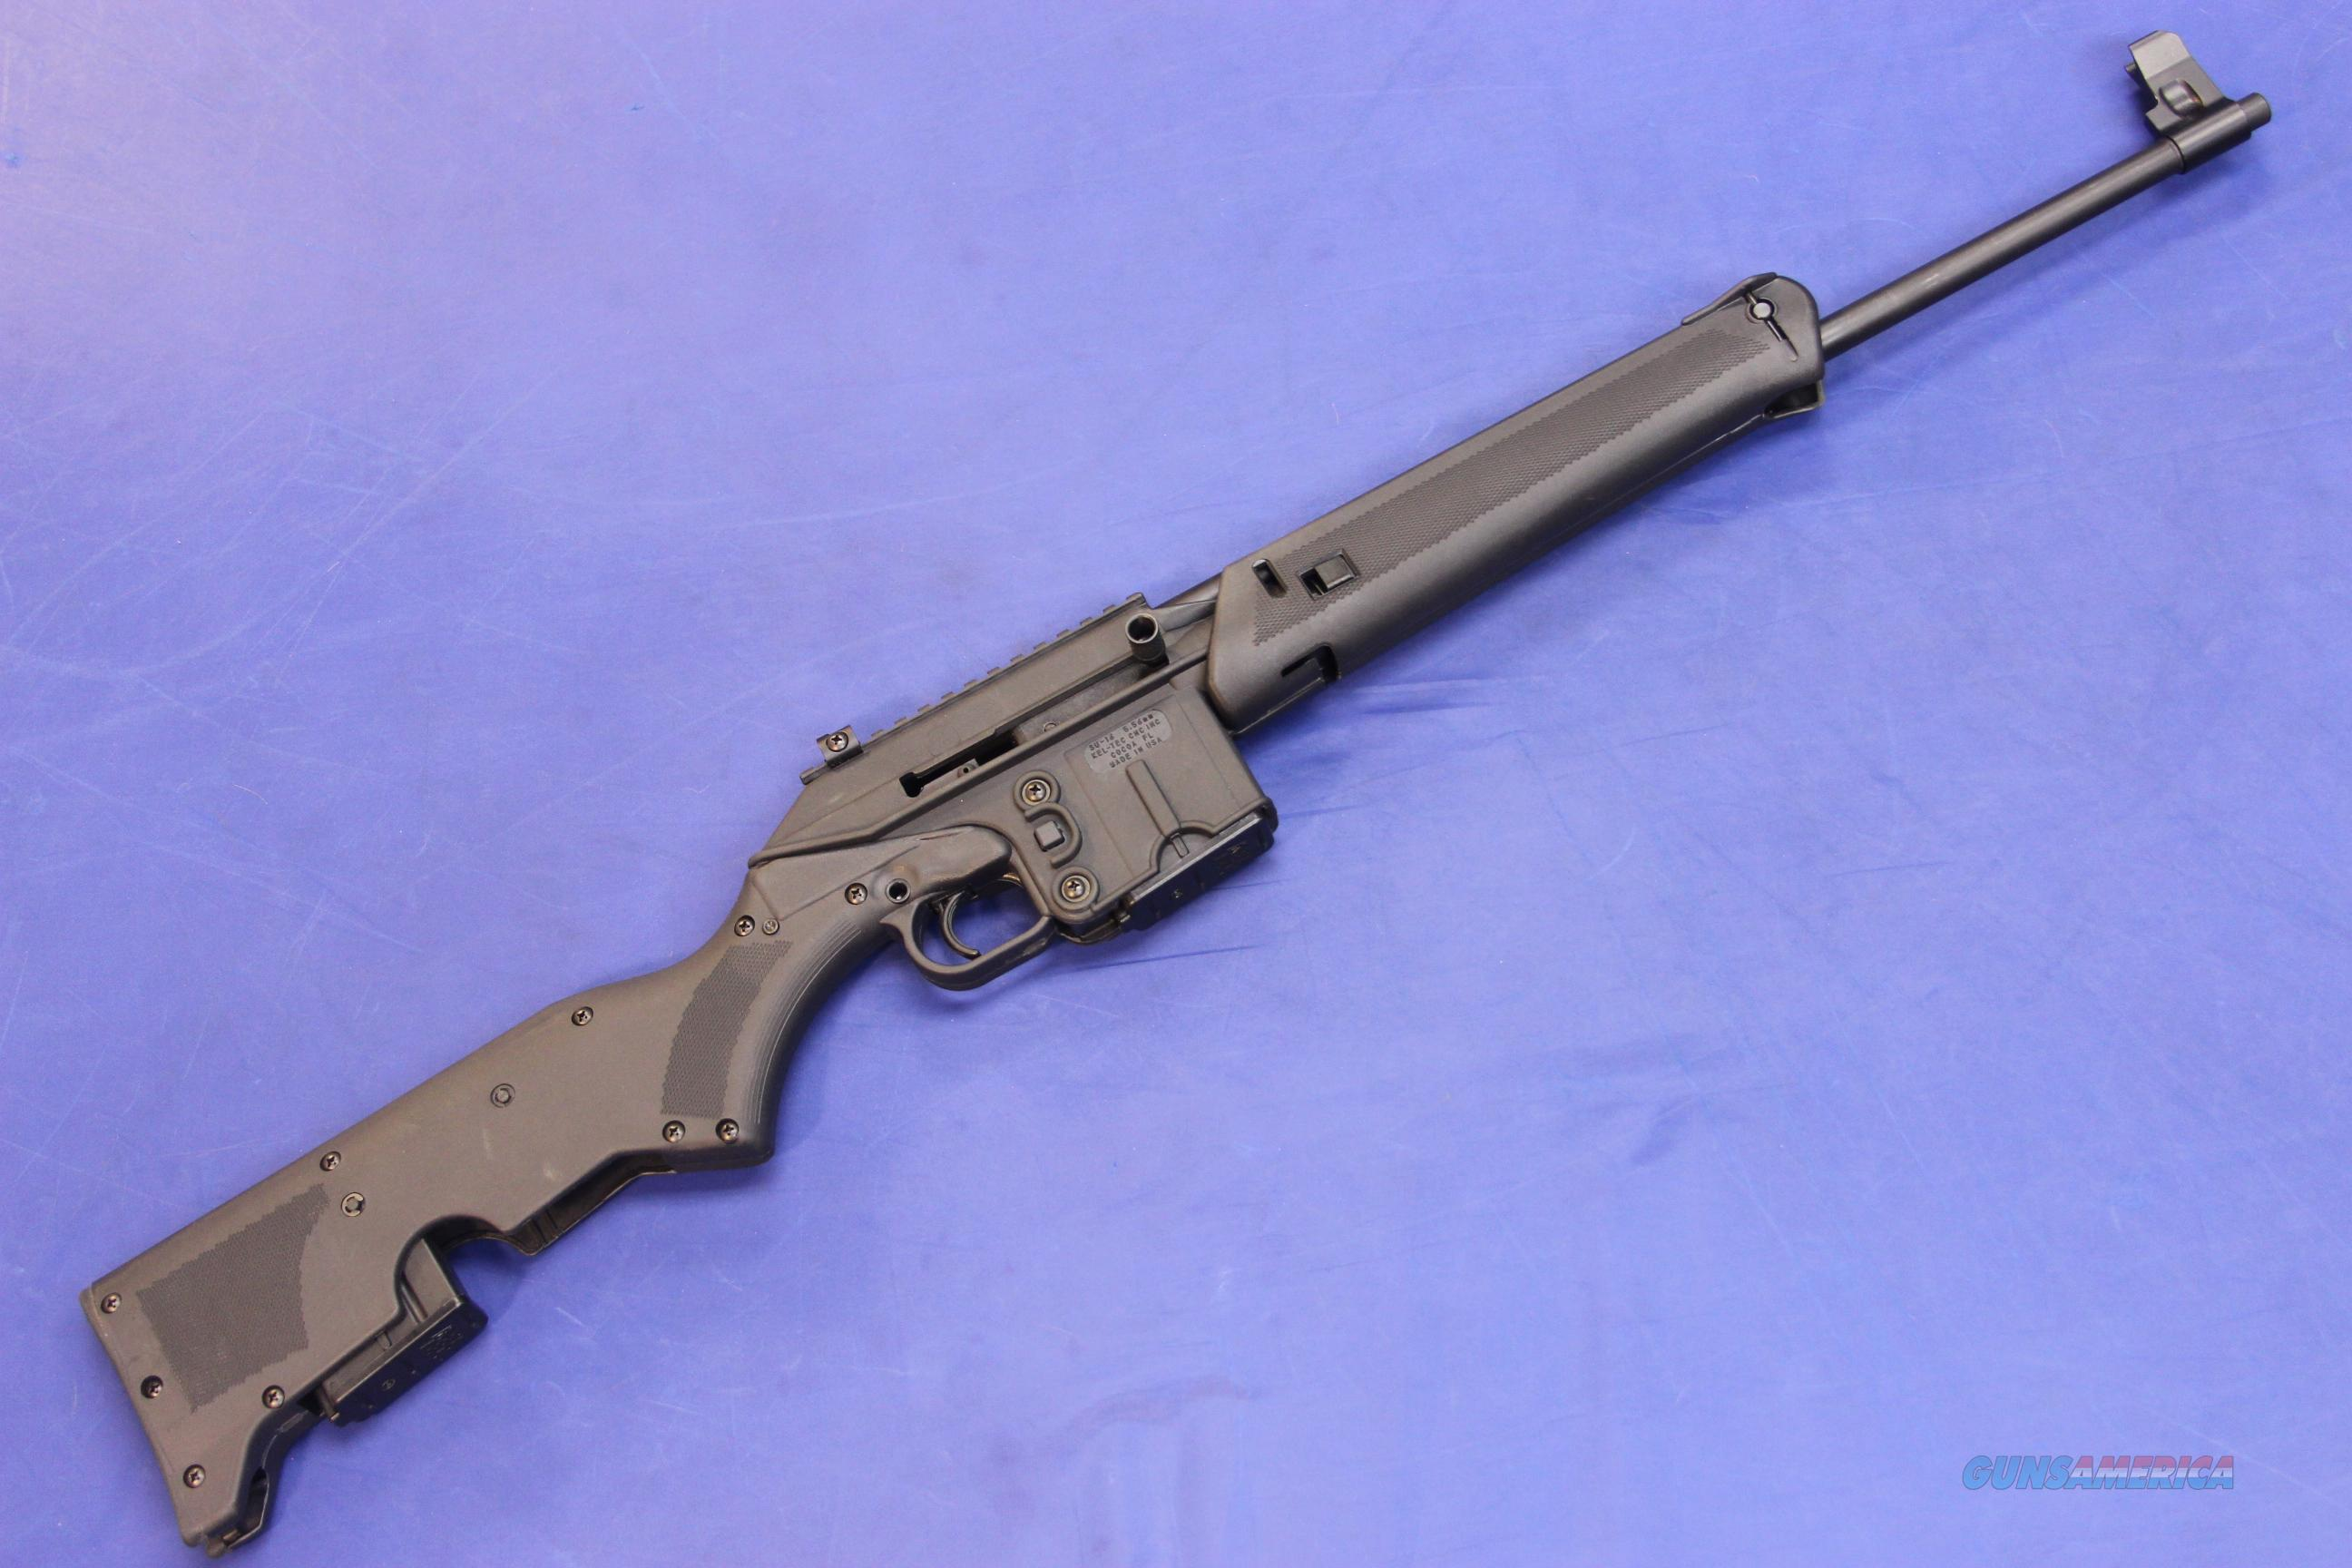 KEL-TEC SU-16A .223 REM - NEW!  Guns > Rifles > Kel-Tec Rifles